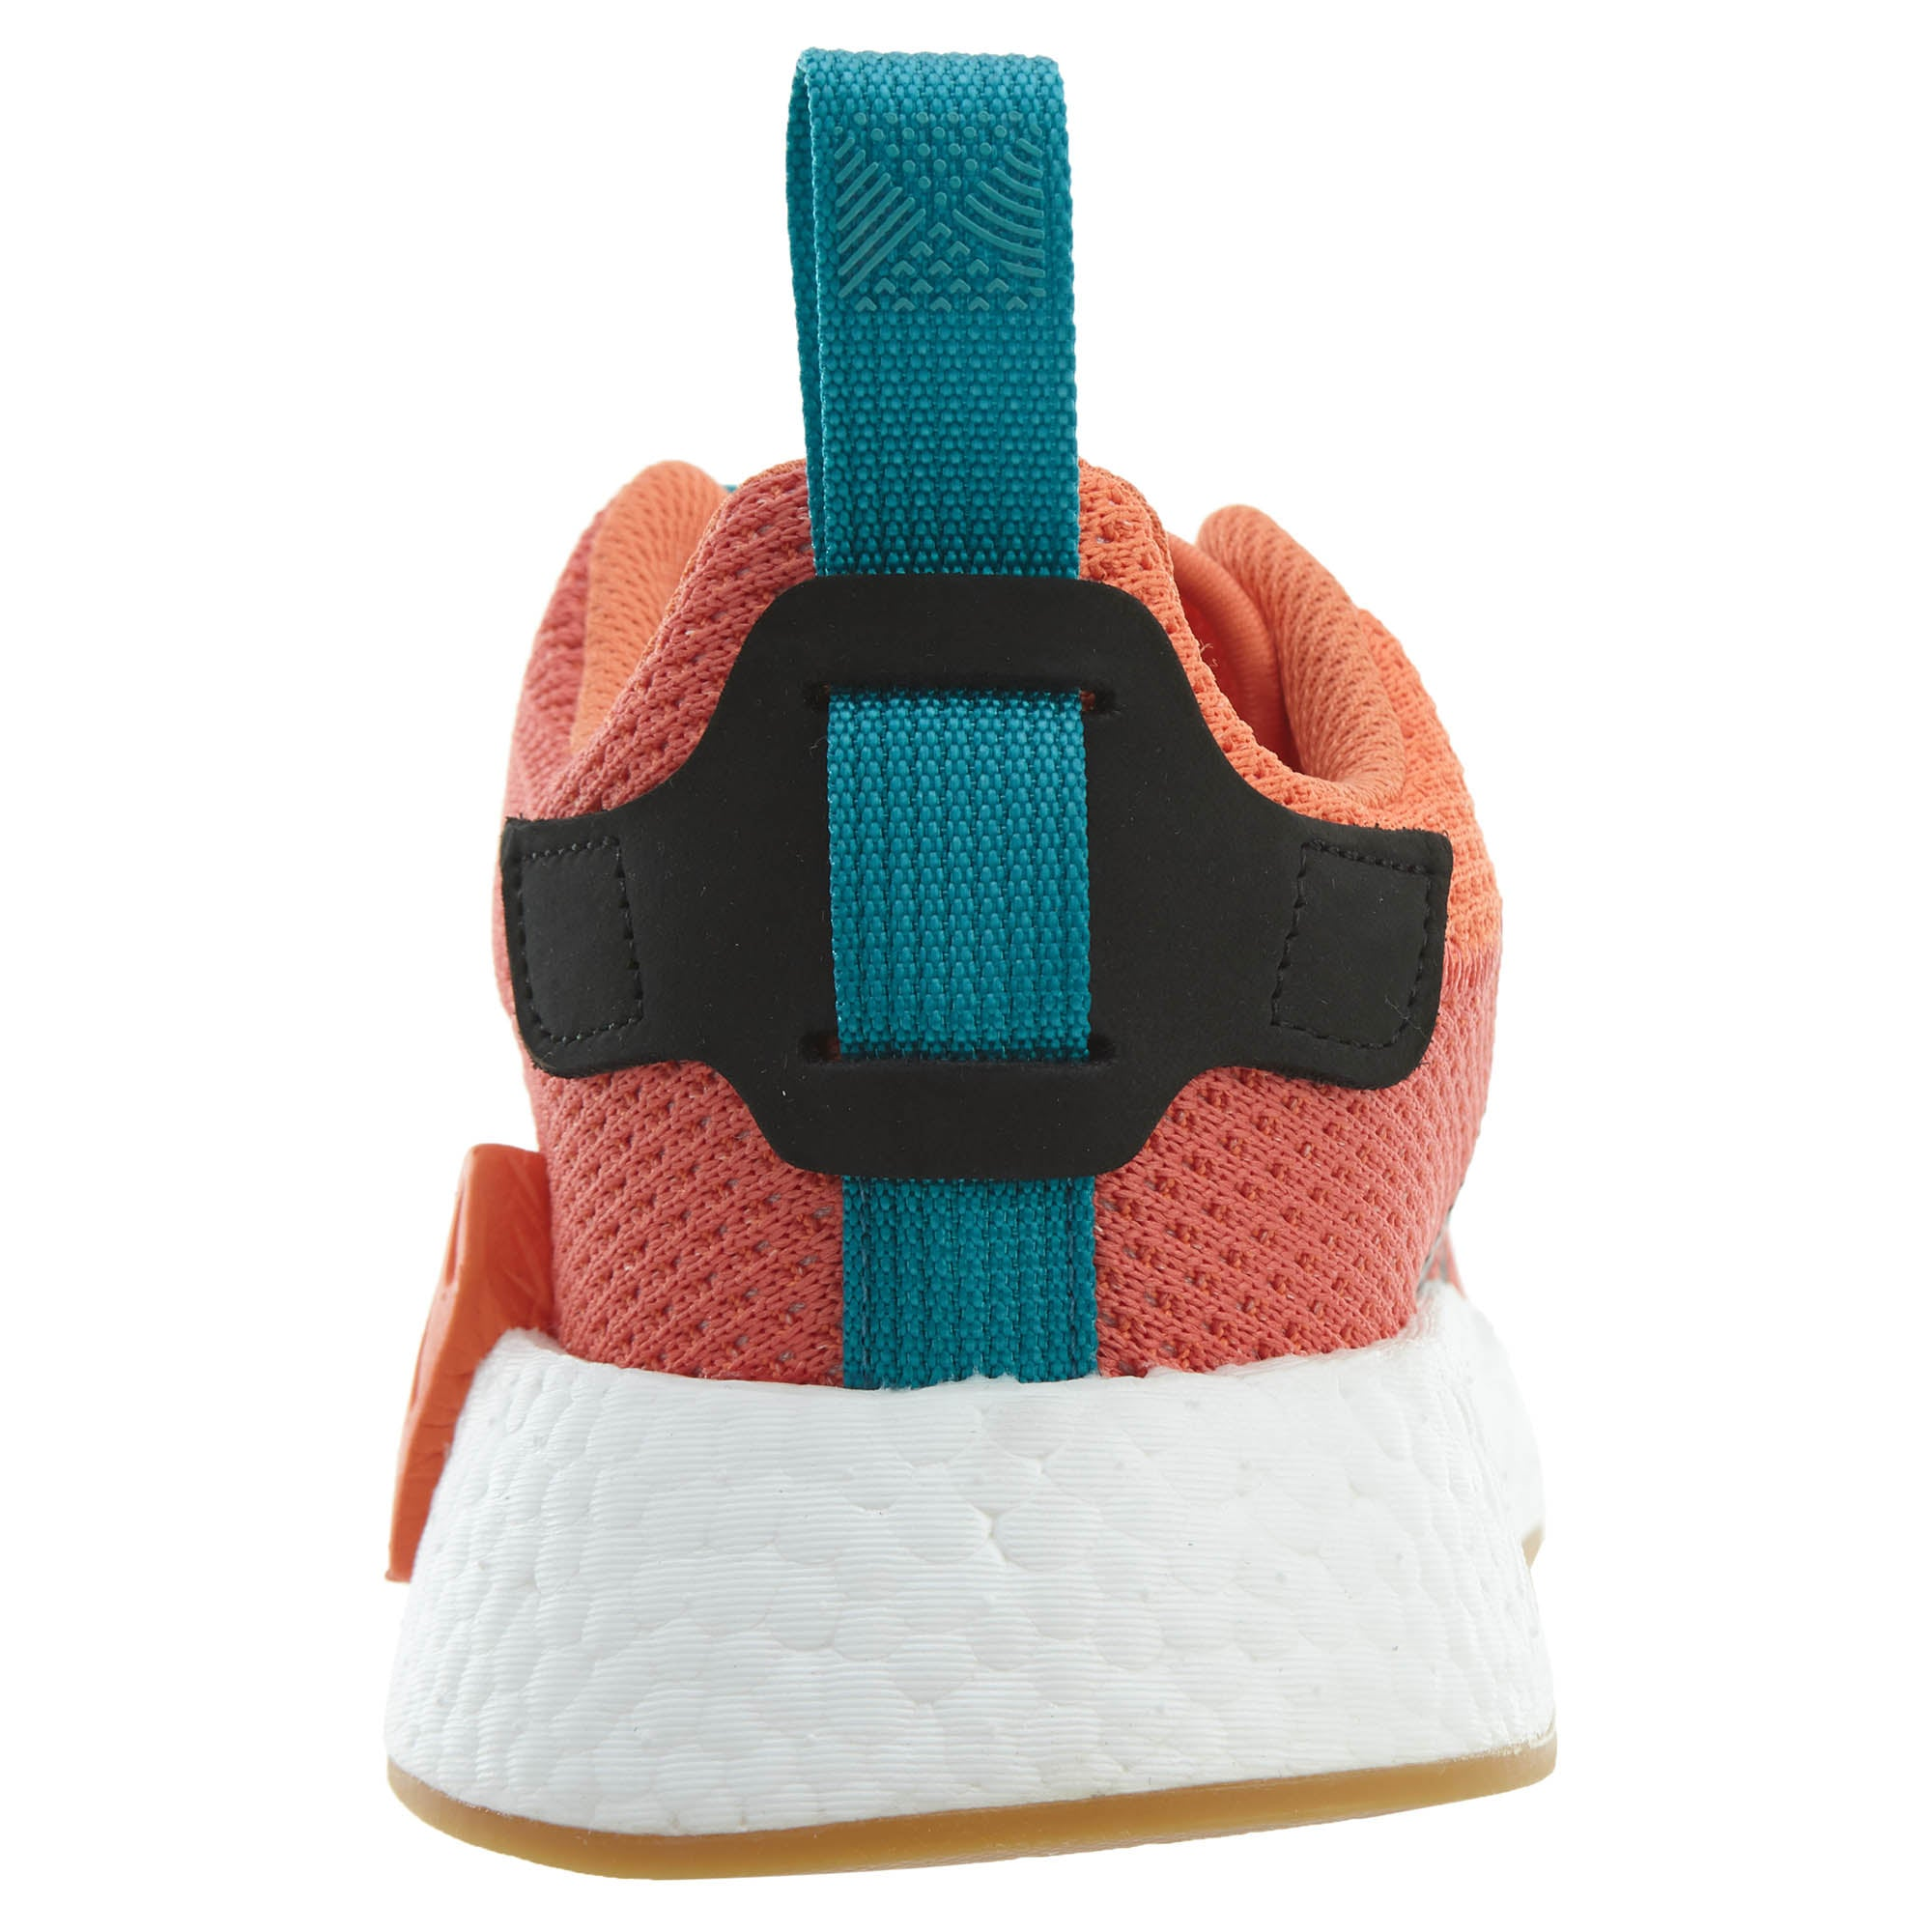 Adidas Nmd R2 Summer Trace Orange Knit Boost Mens Style Cq3081 Sneaker Experts